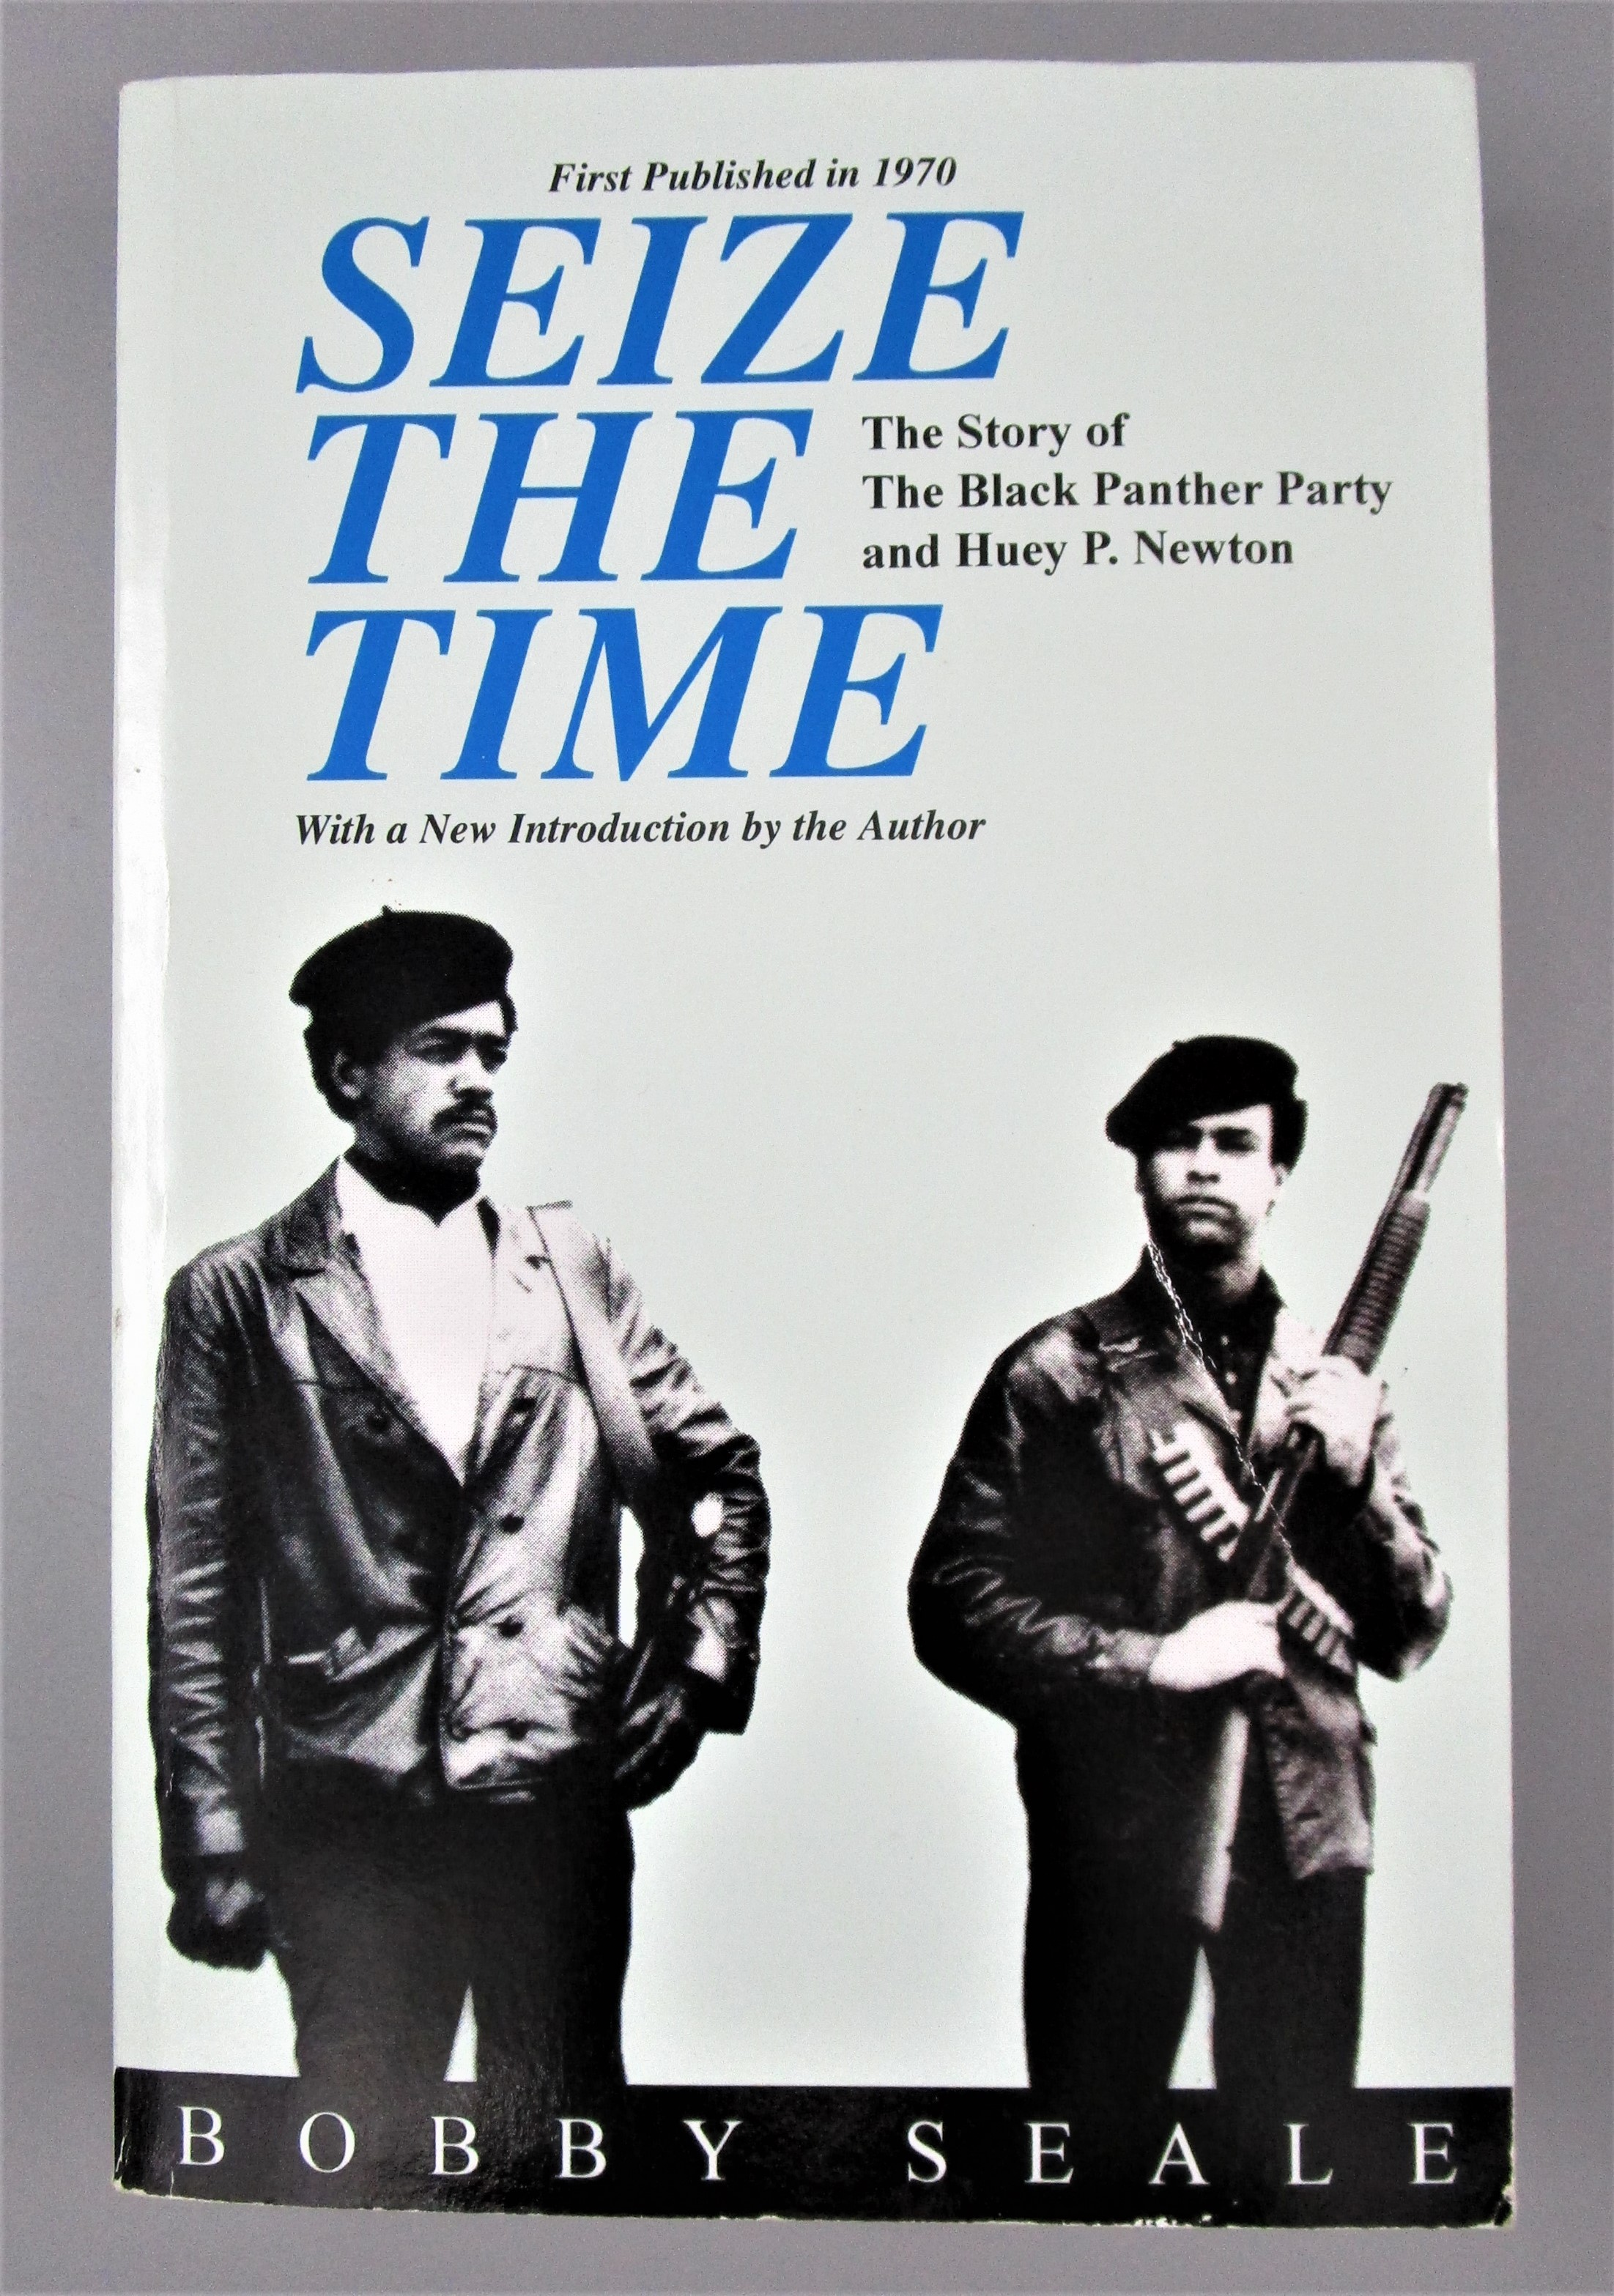 SEIZE THE TIME, by Bobby Seale - 1991 [Signed]